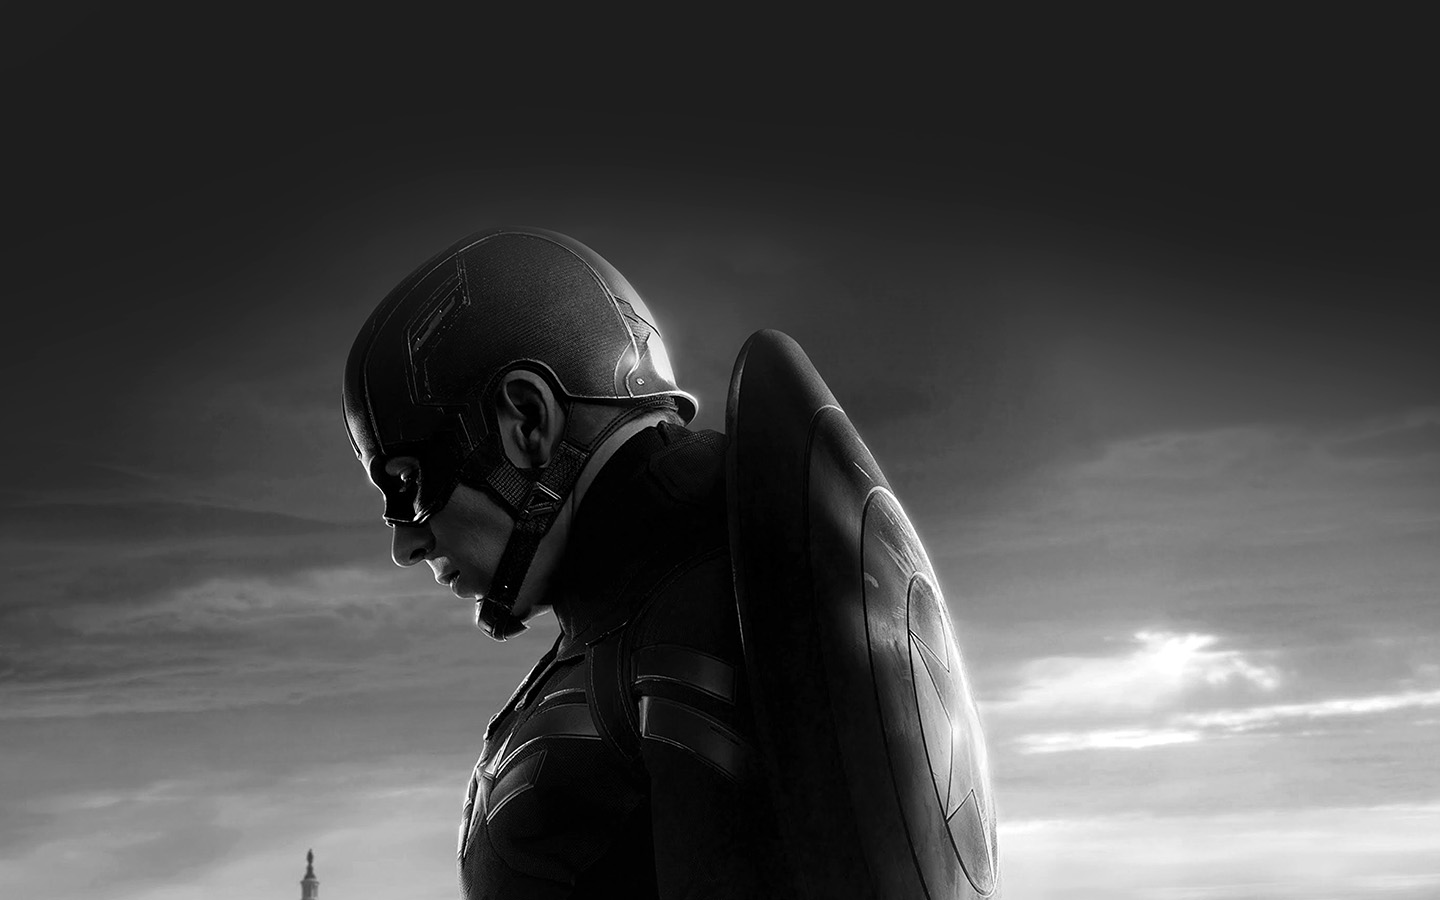 Classic Iphone Wallpaper For Iphone X An85 Captain America Sad Hero Film Marvel Dark Bw Wallpaper